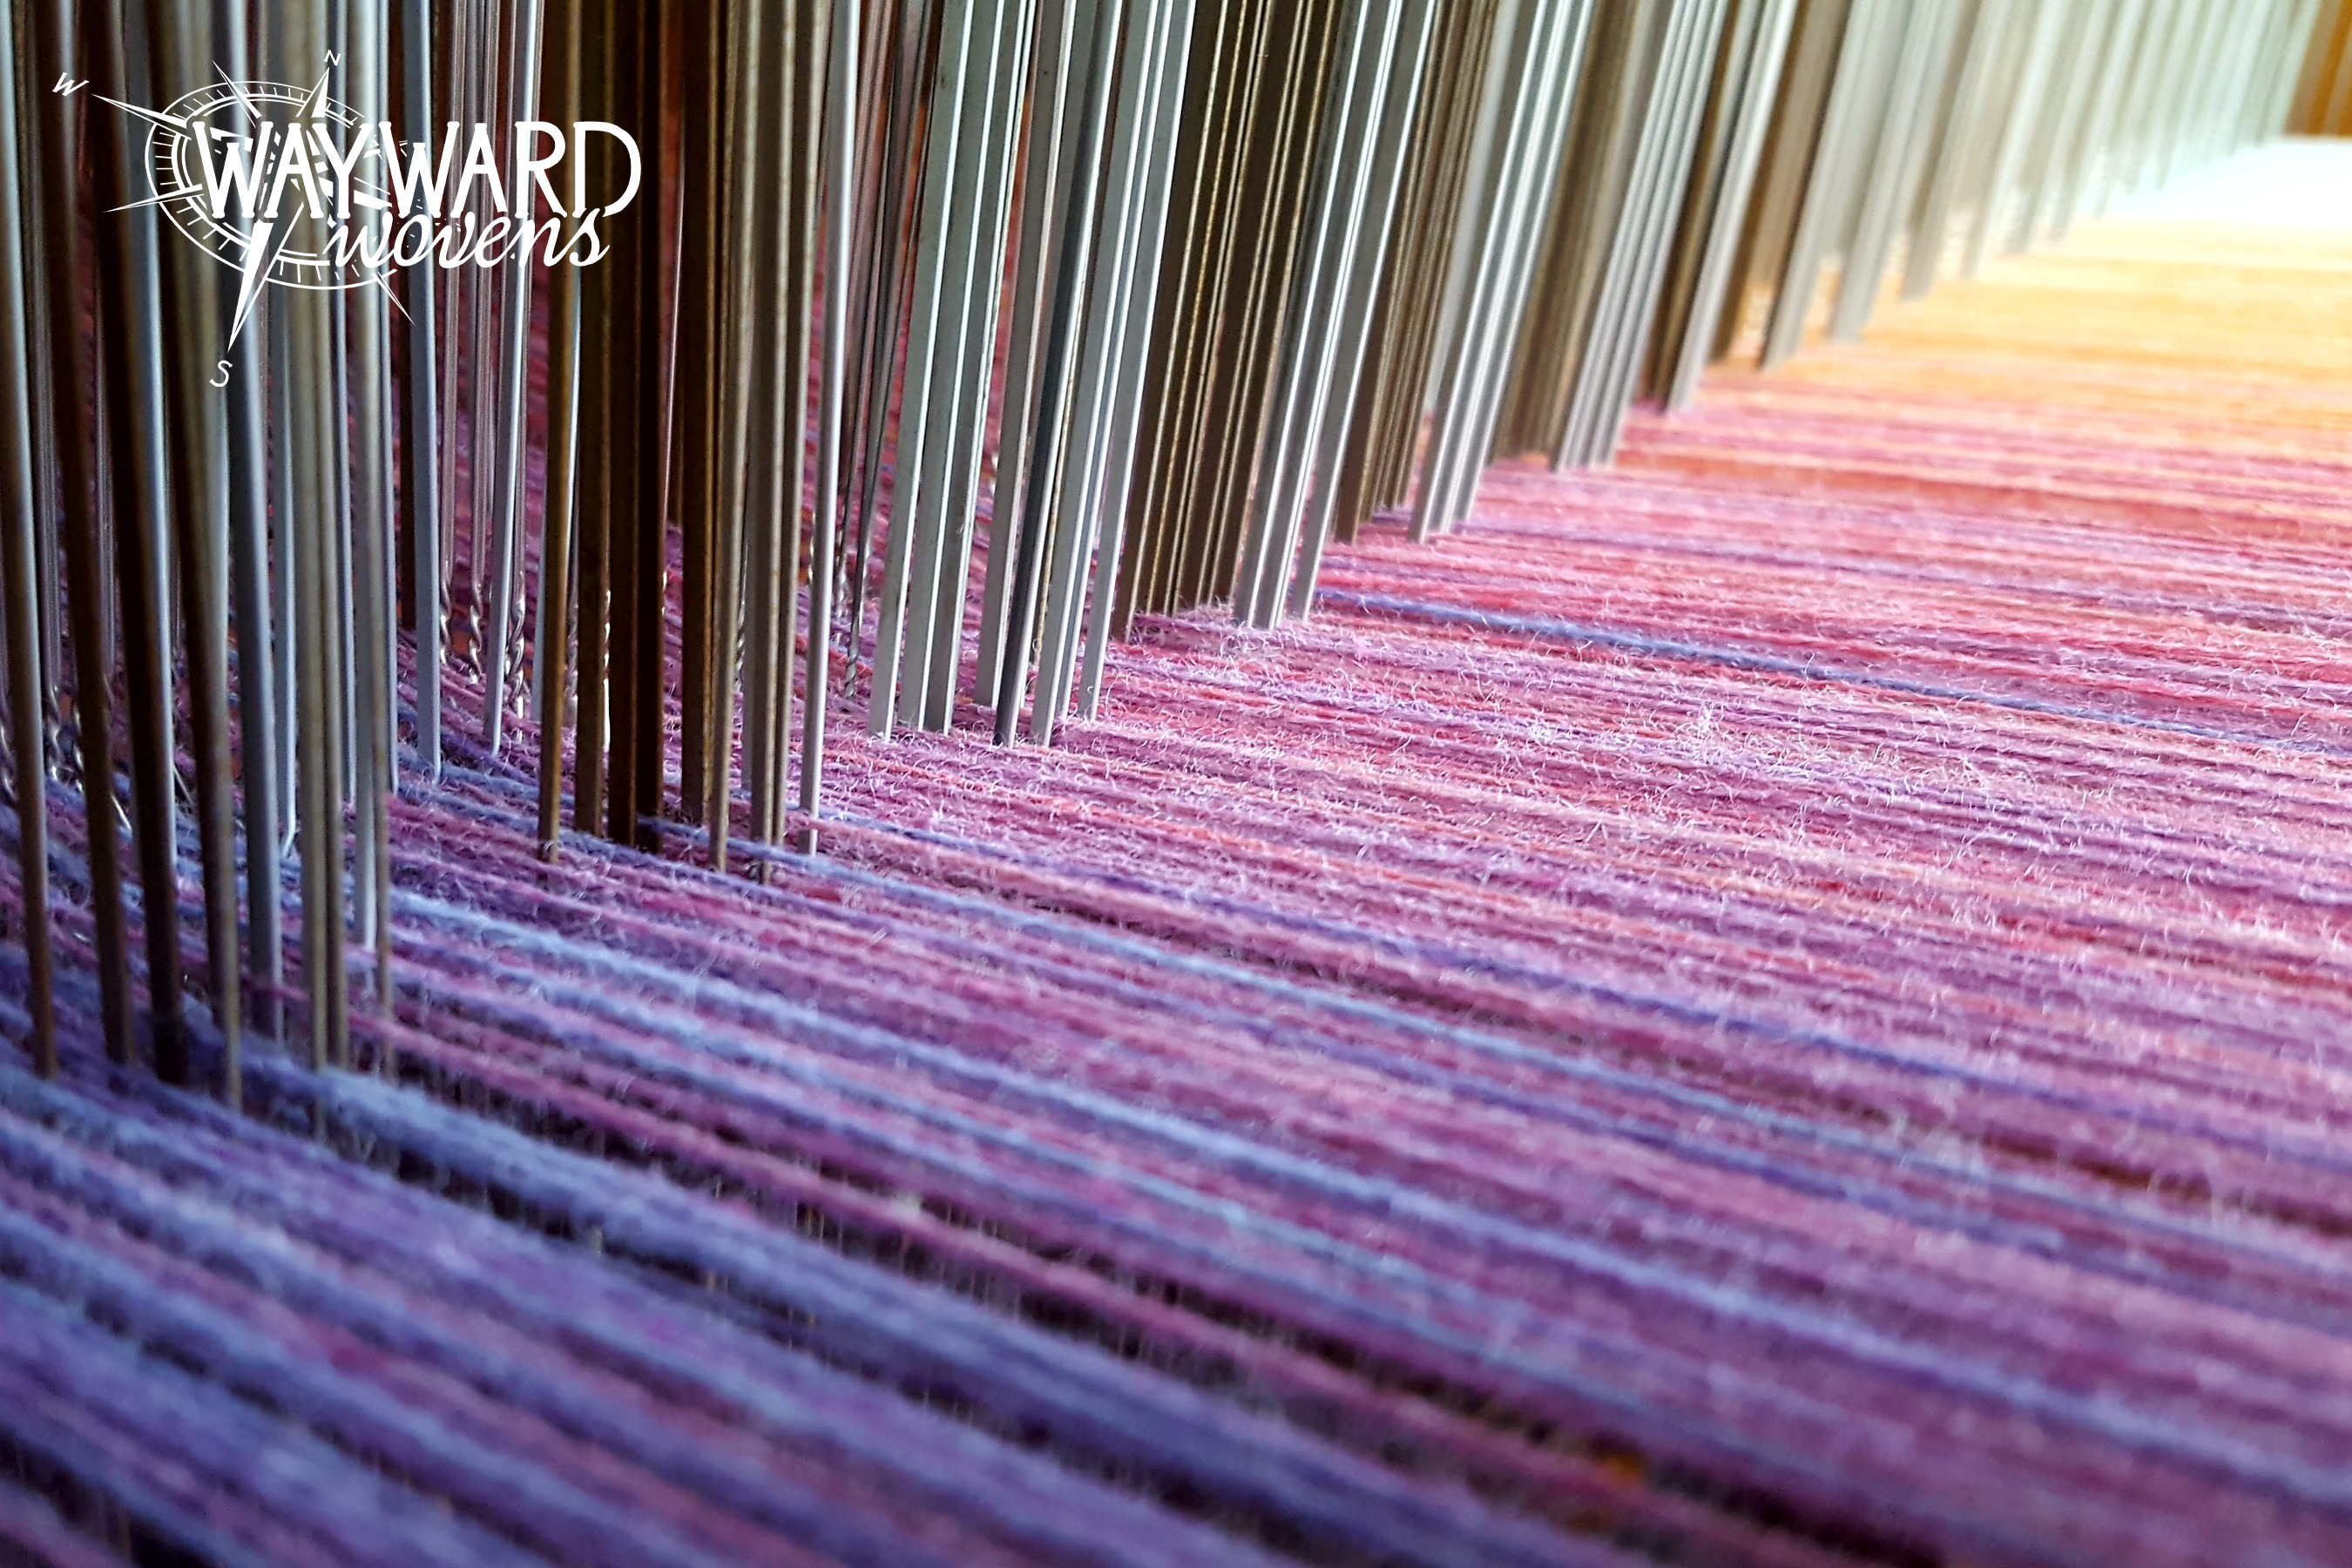 Warp through heddles